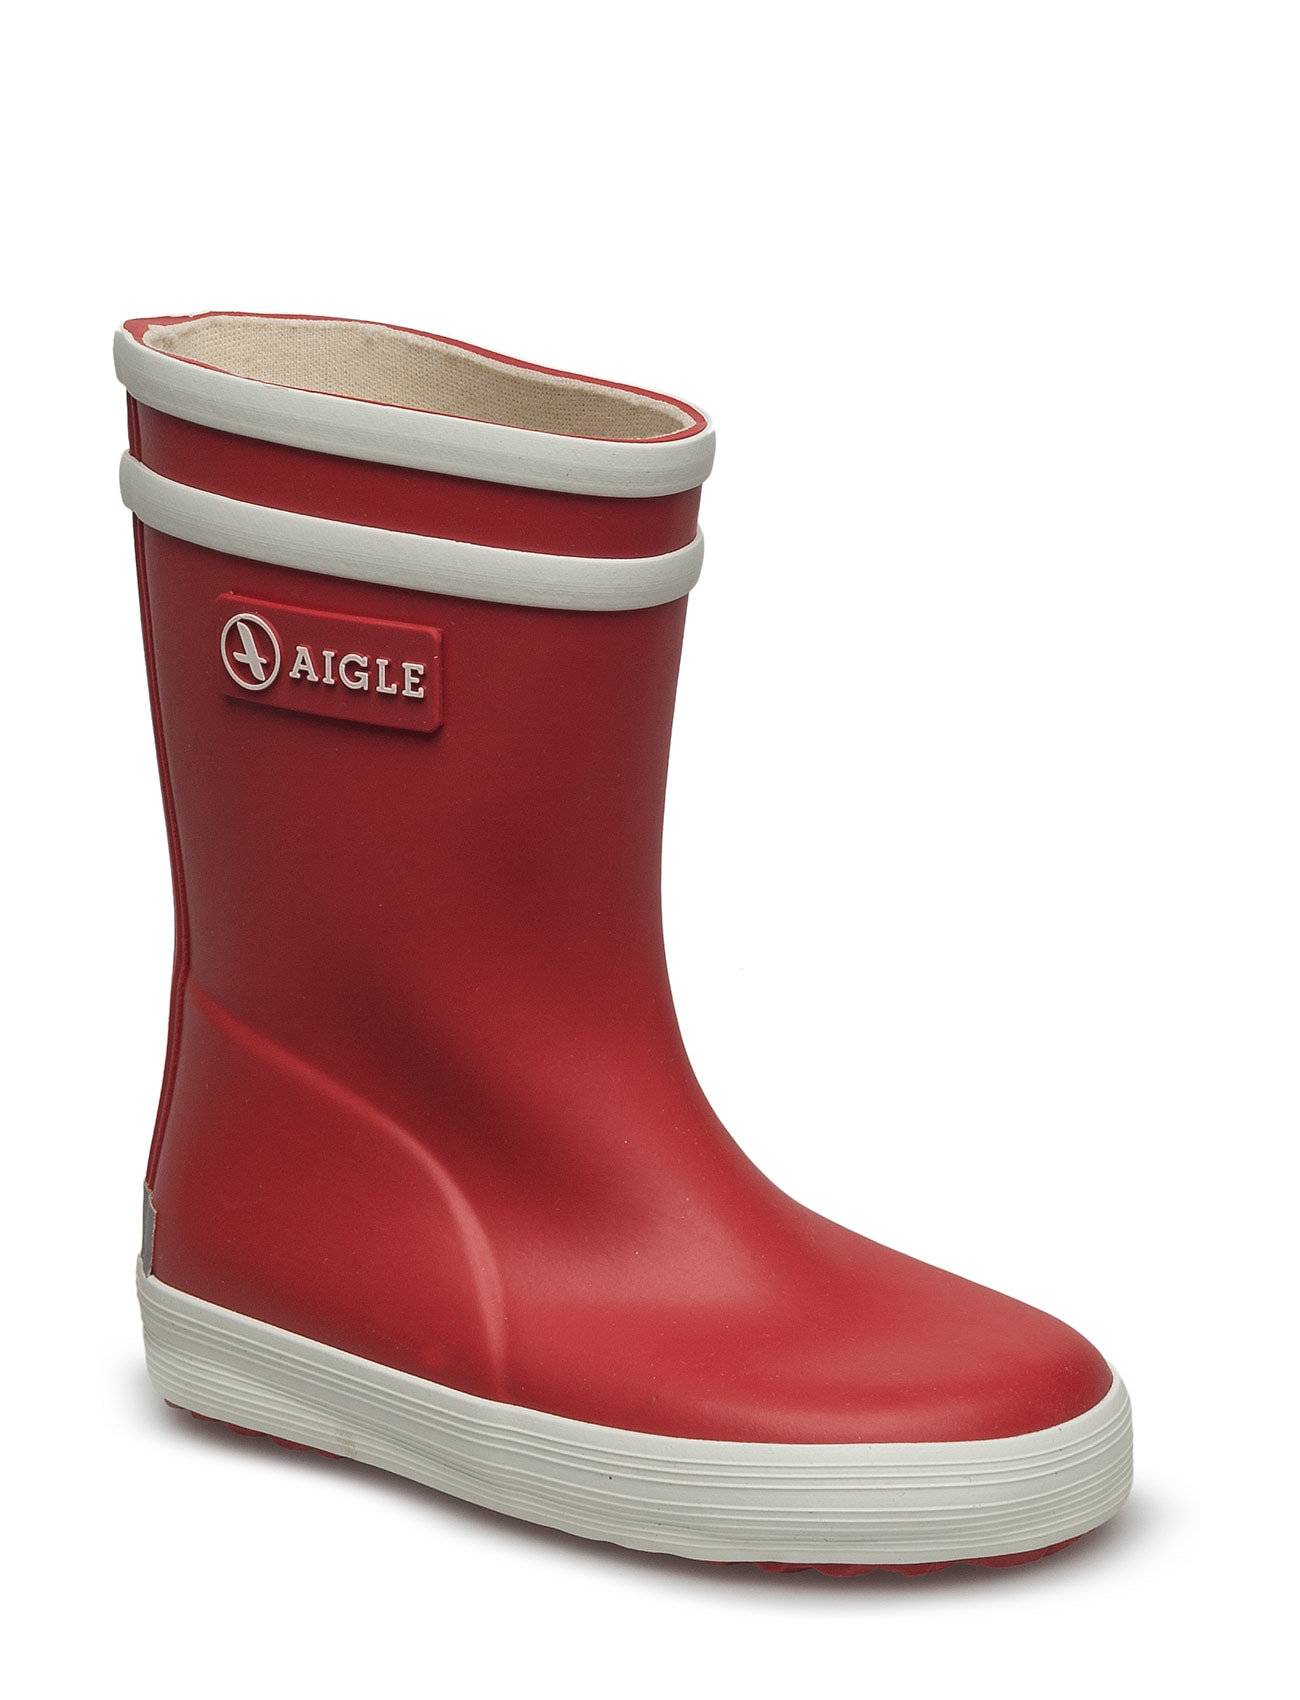 Aigle Baby Flac Rouge New